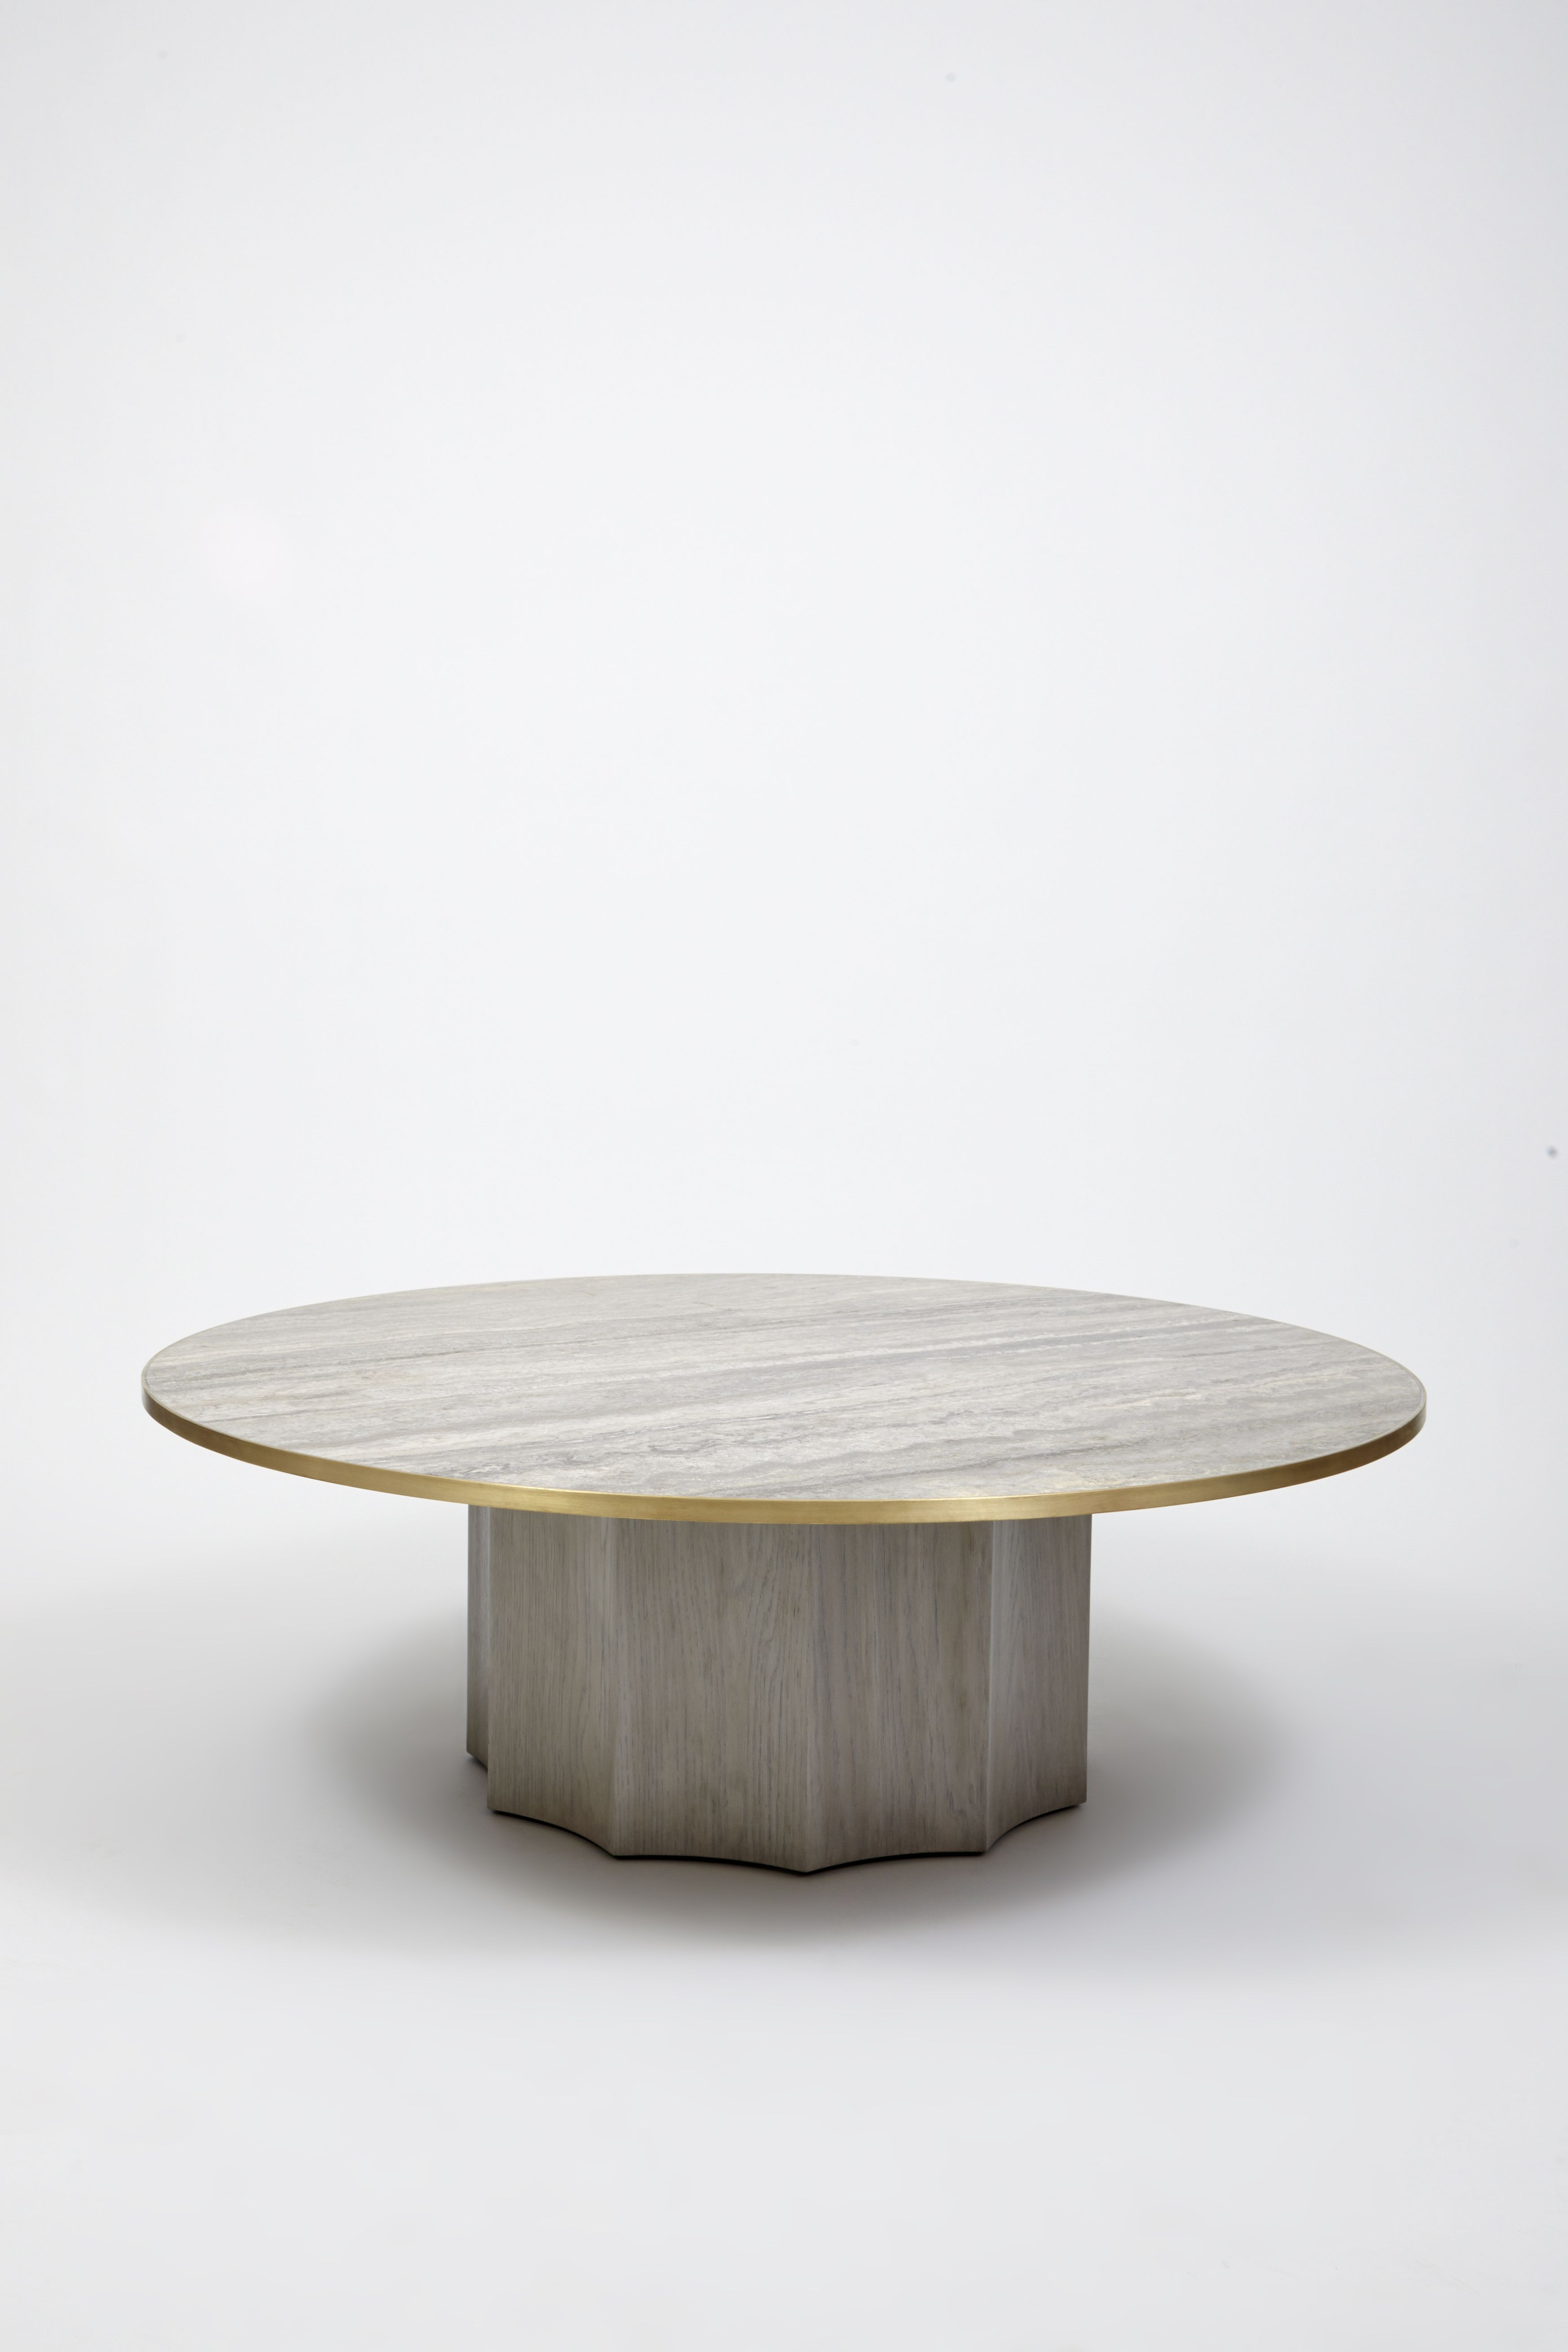 Normandie cocktail table in grey washed oak by lawson fenning normandie cocktail table in grey washed oak by lawson fenning geotapseo Image collections